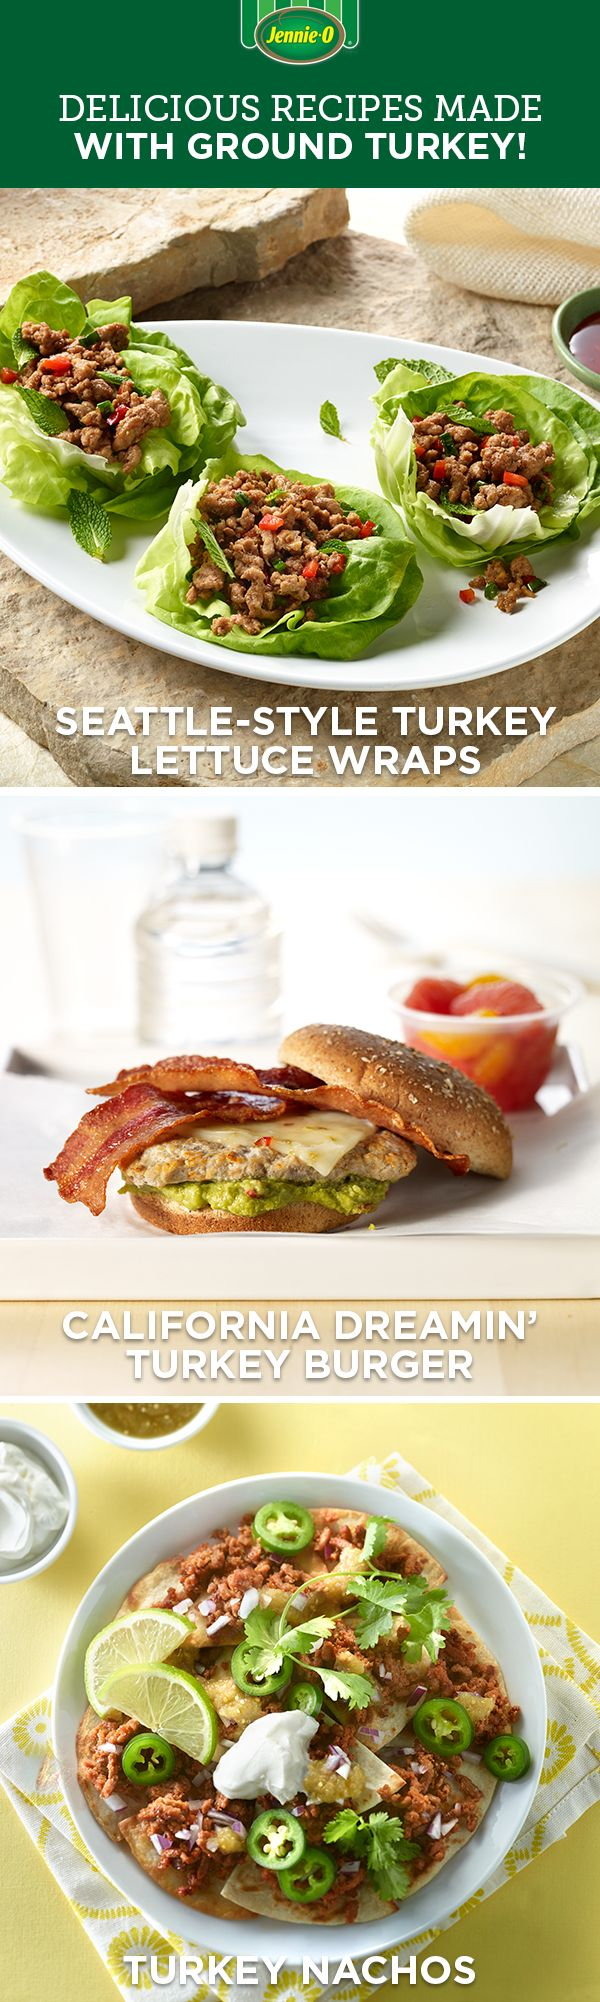 It's easy to eat well with JENNIE-O® Ground Turkey! Try these classics tonight.